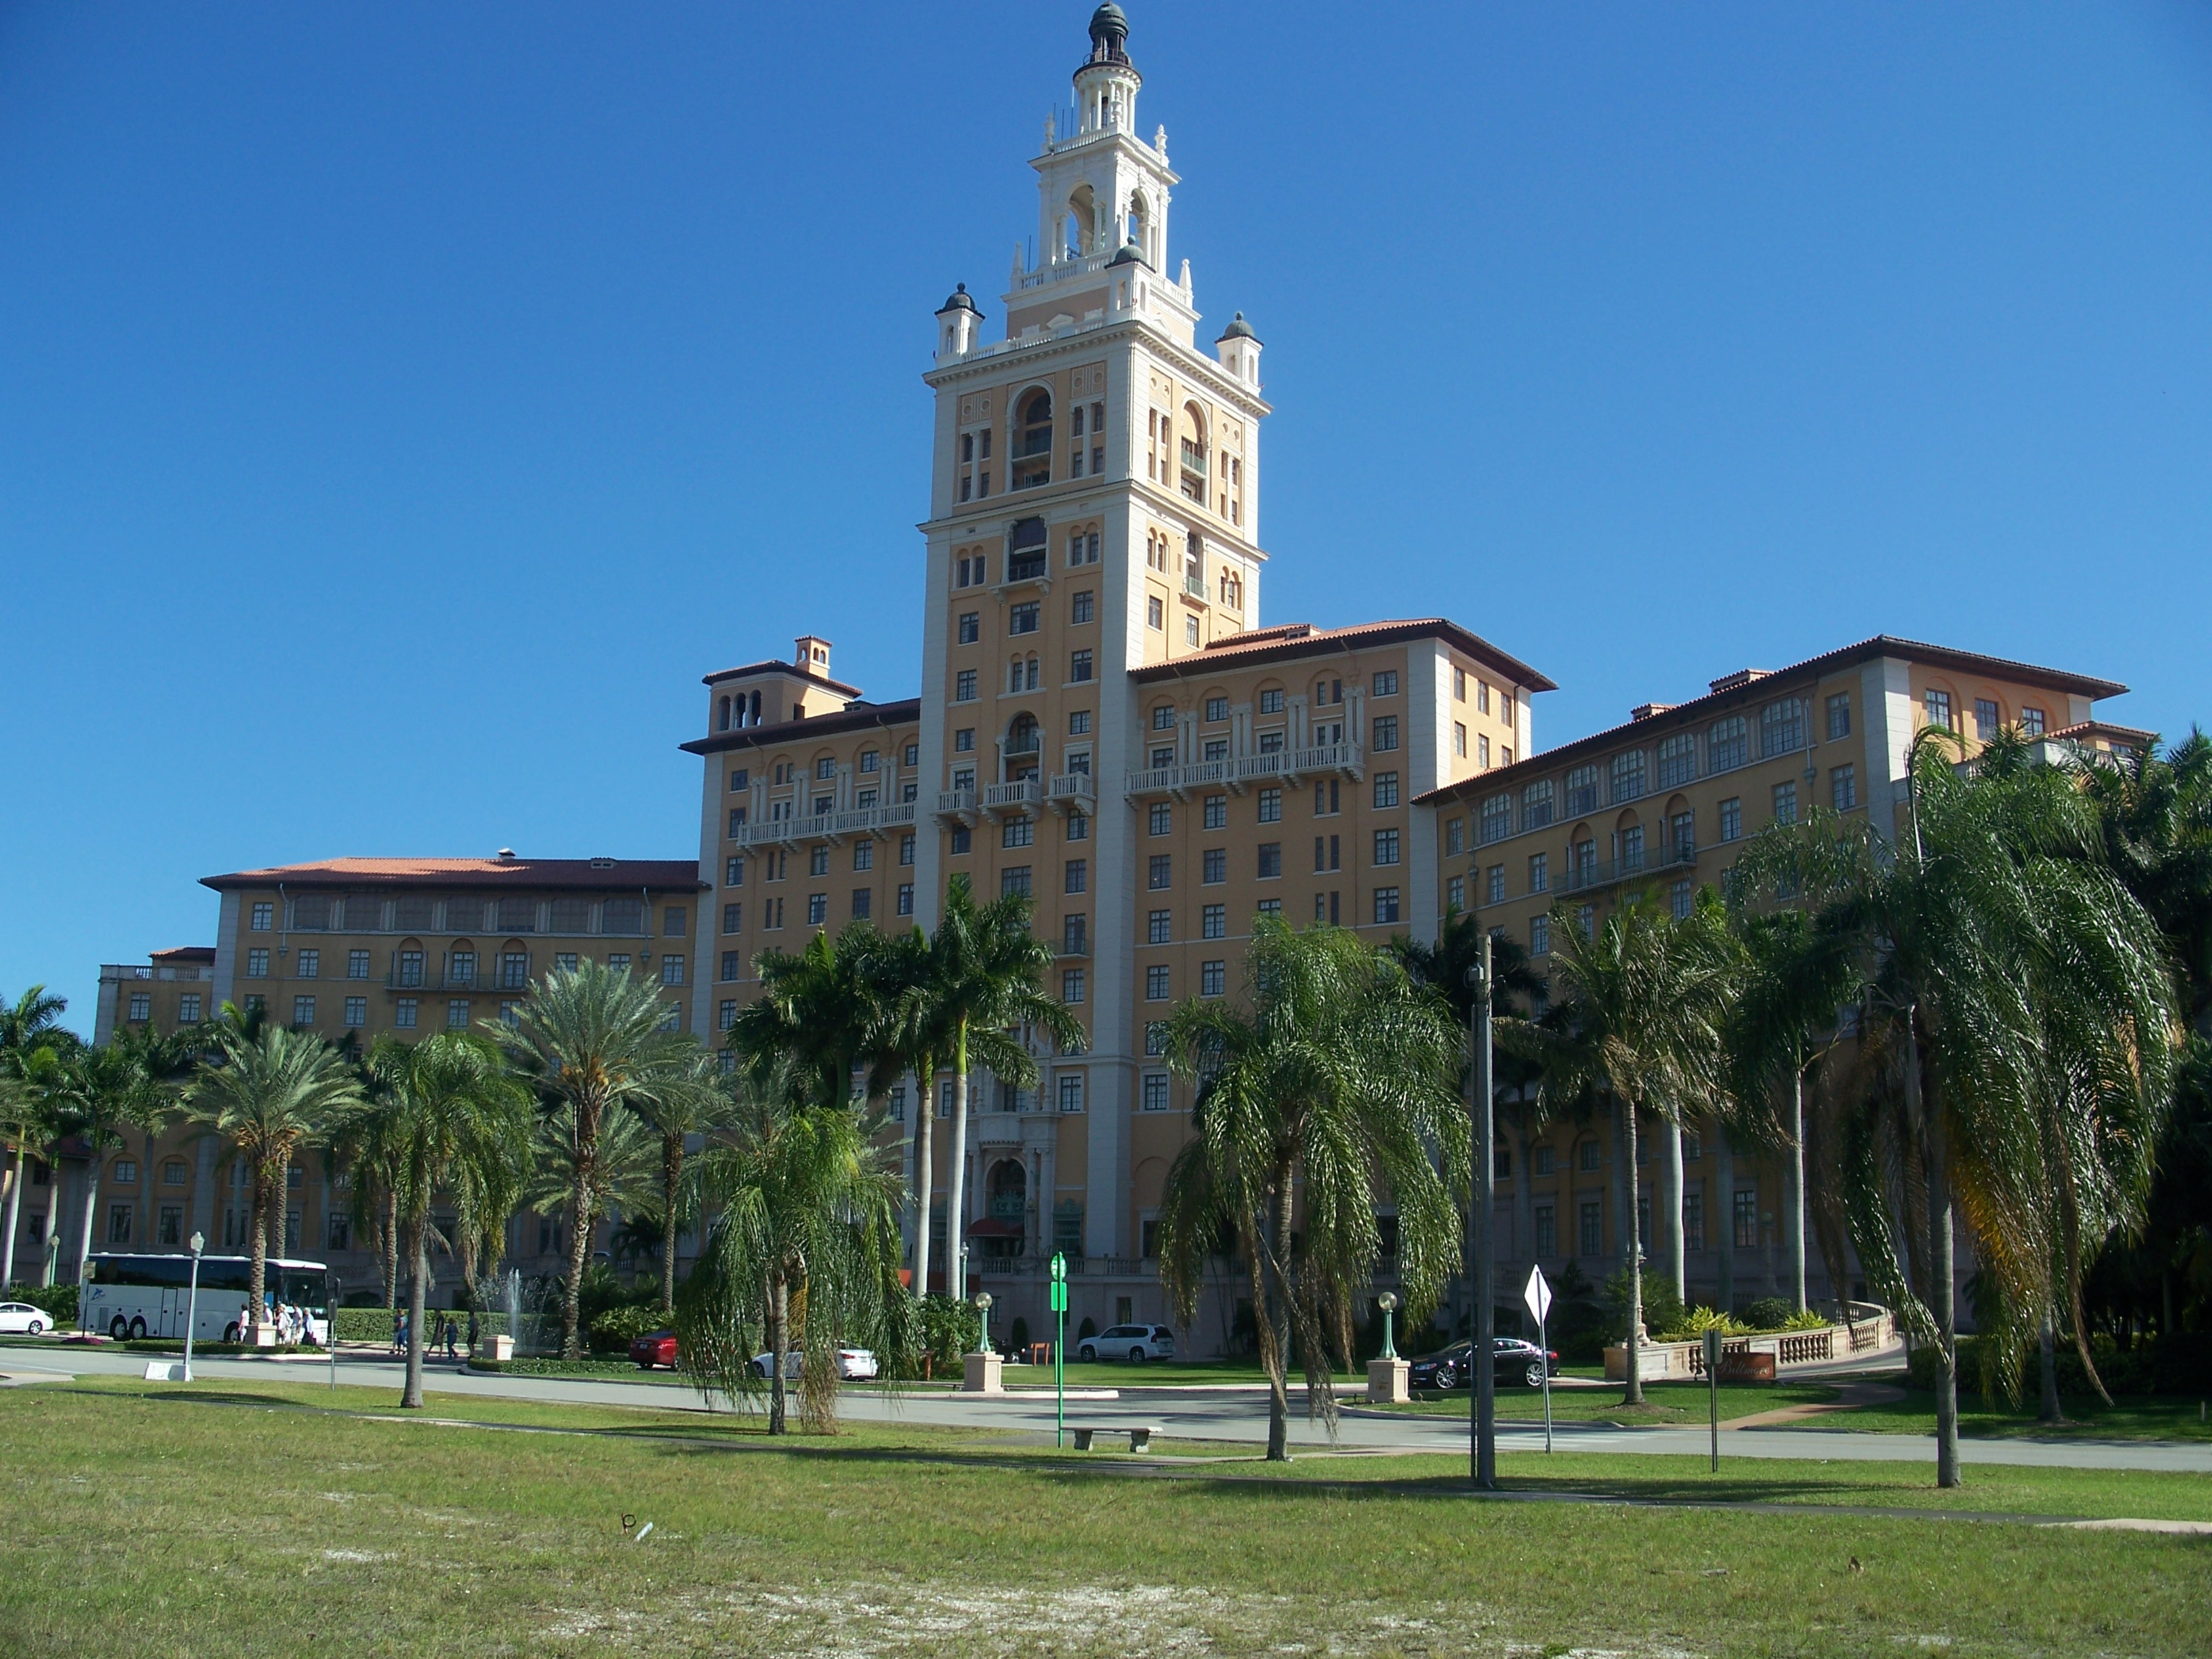 Coral Gables Biltmore Hotel and Golf Course